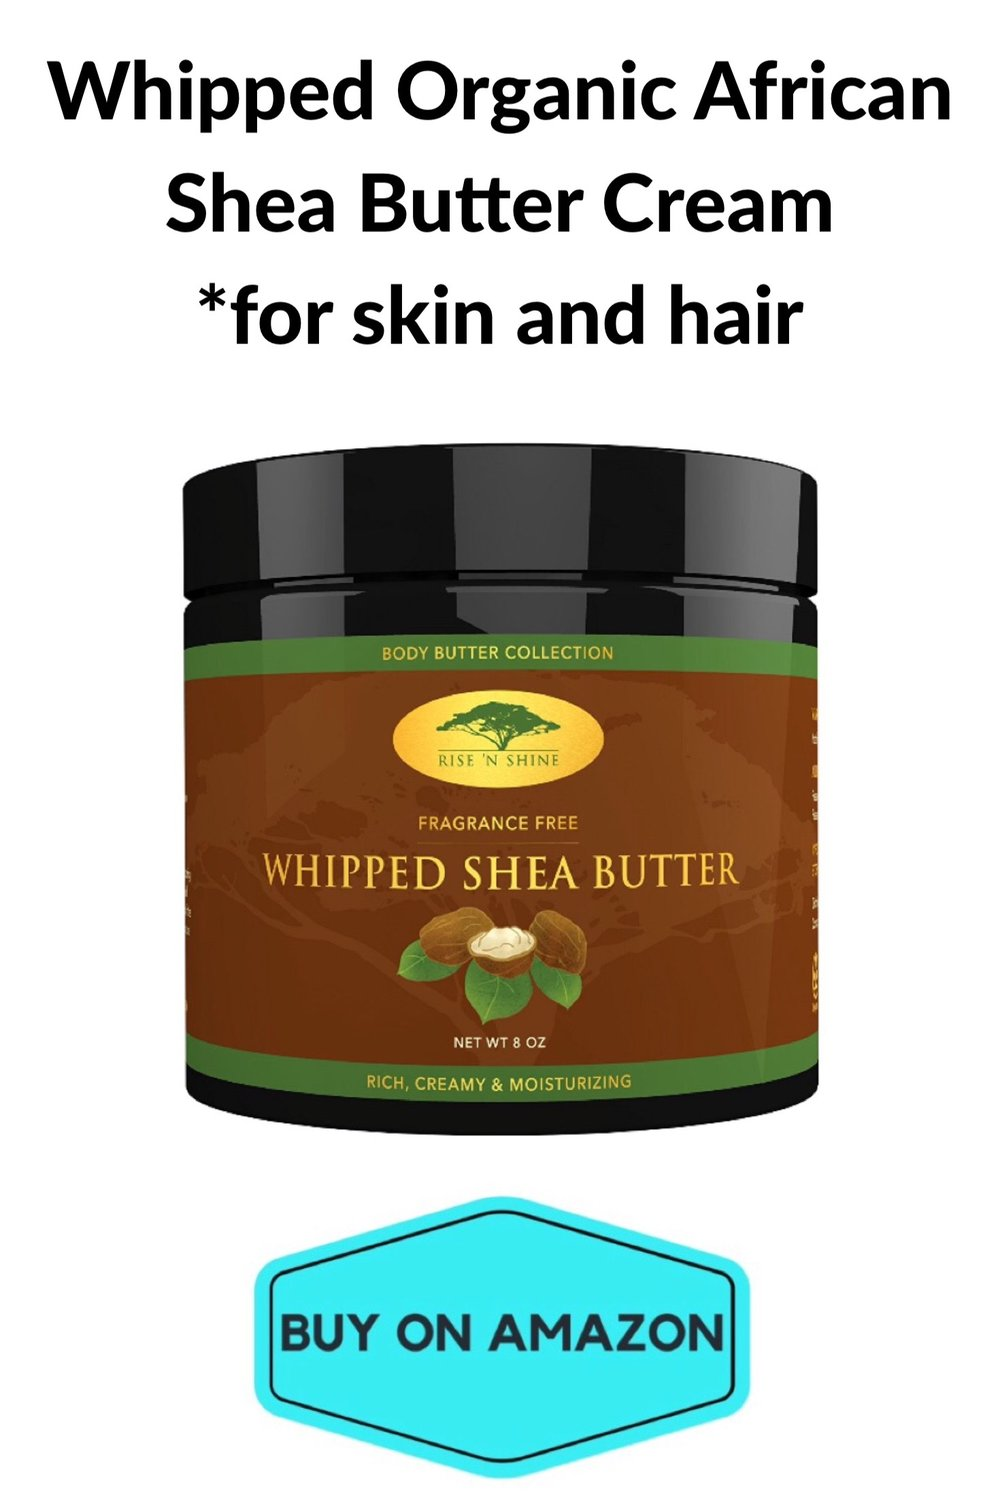 Whipped organic African Shea Butter Cream